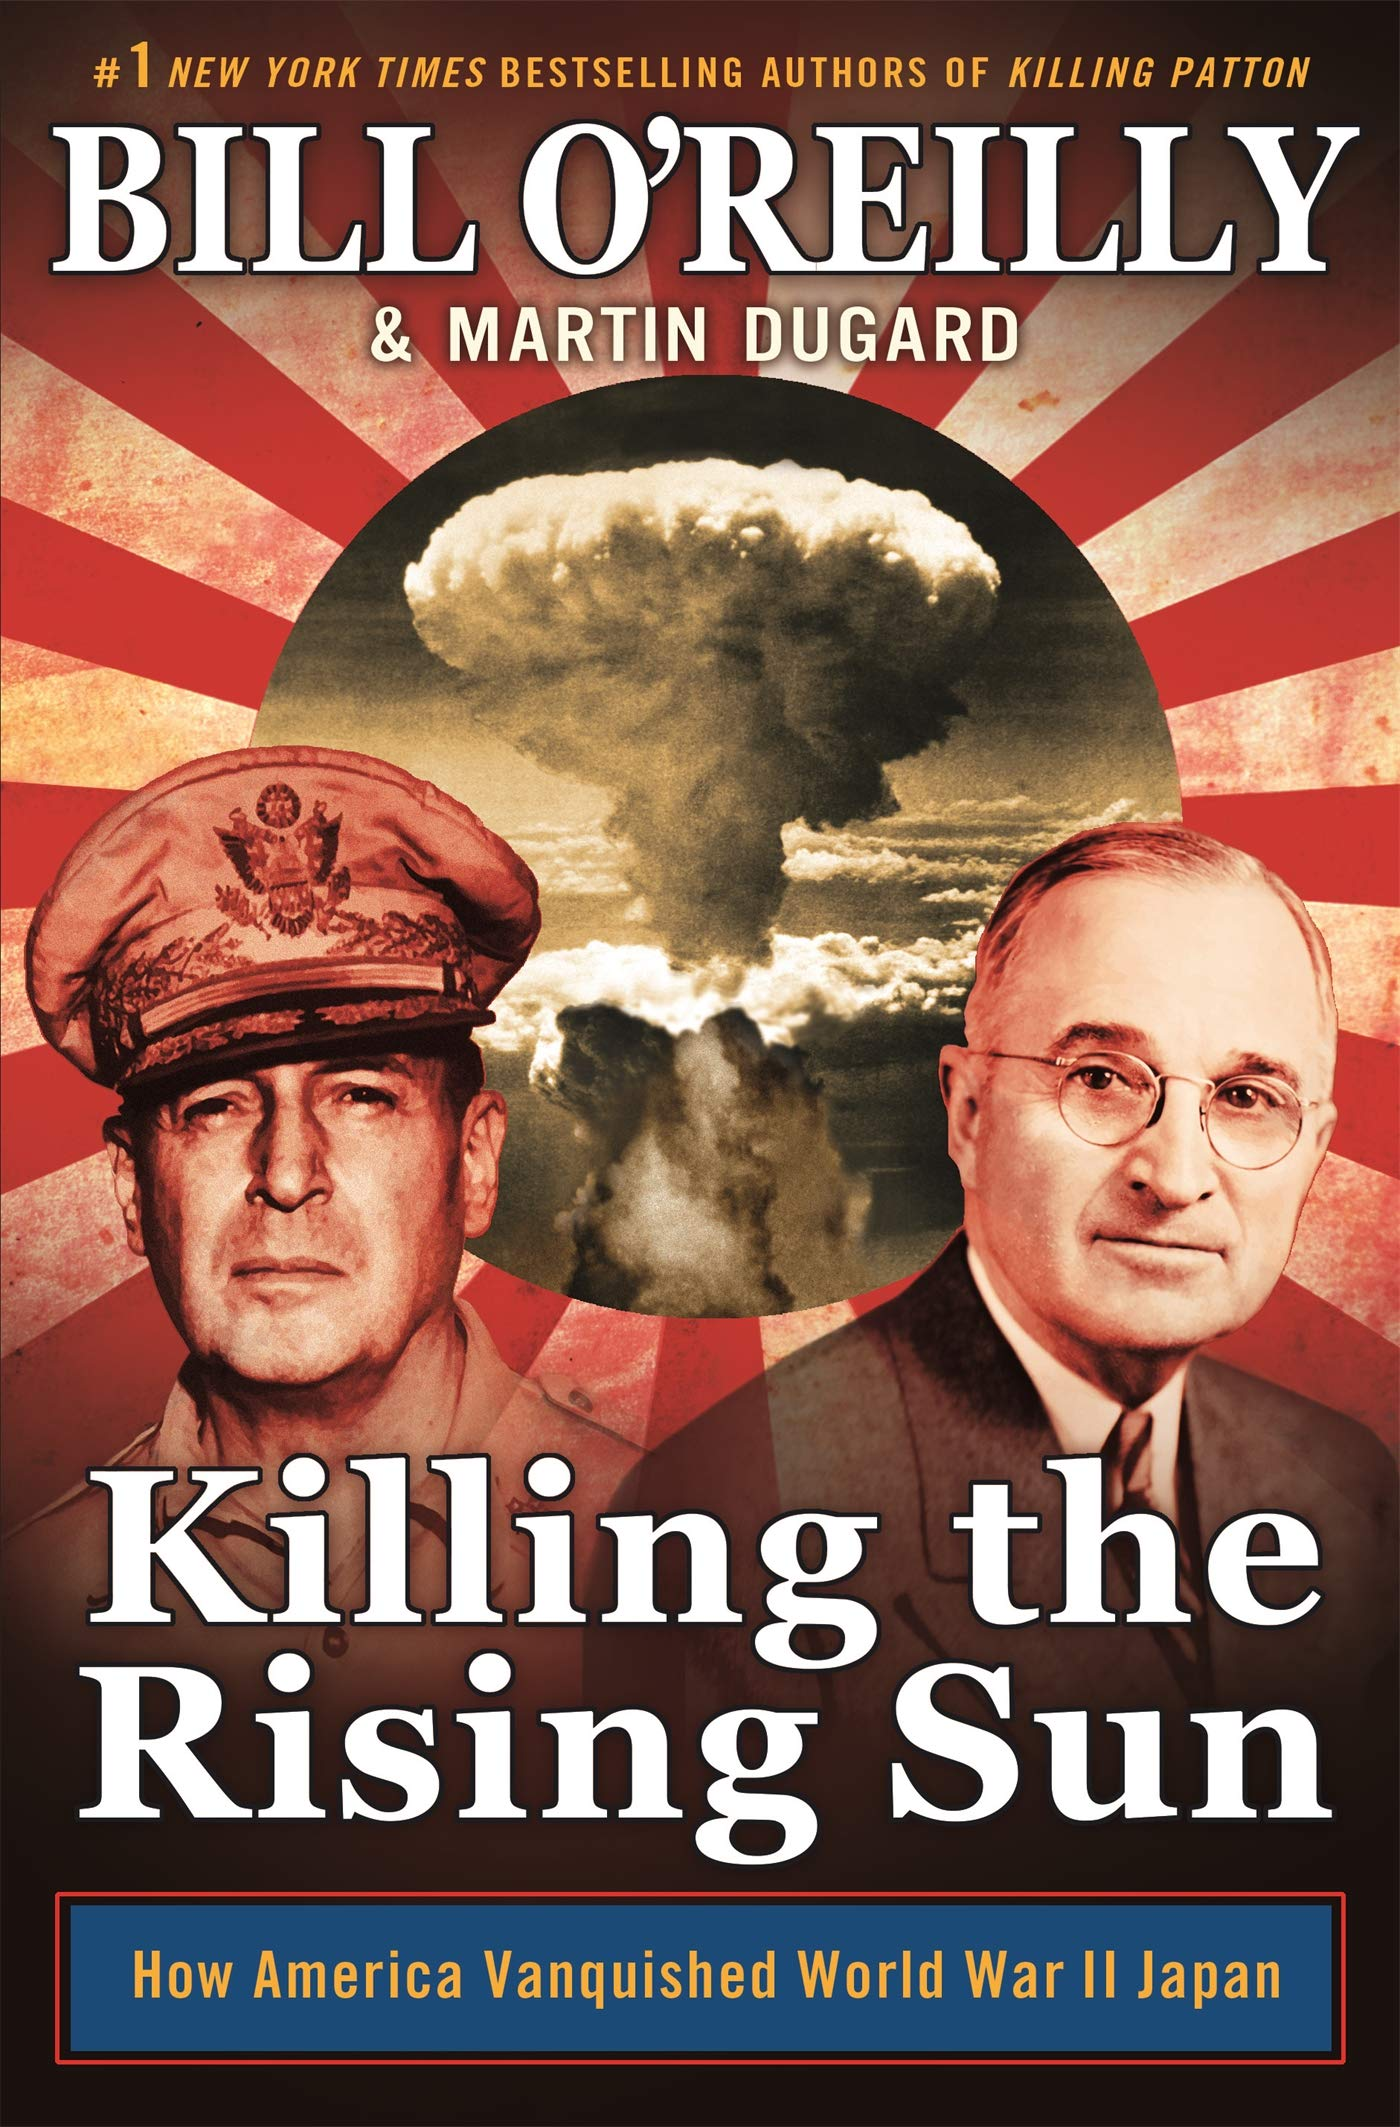 Killing the Rising Sun: How America Vanquished World War II Japan (Bill  O'Reilly's Killing Series): O'Reilly, Bill, Dugard, Martin: 9781627790628:  Amazon.com: Books